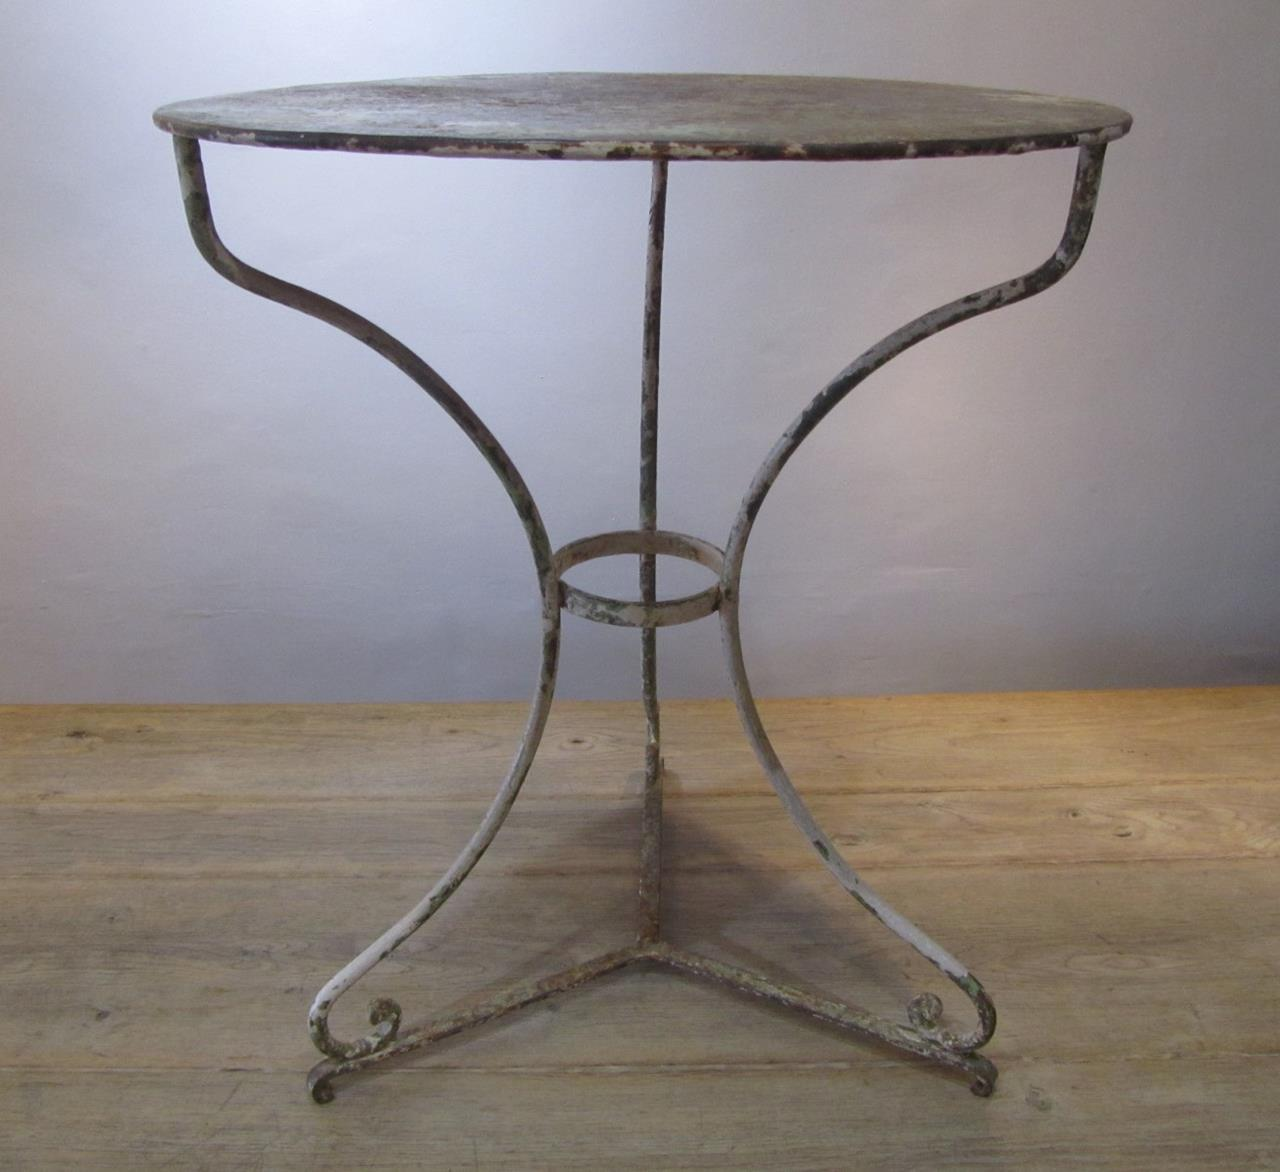 Antique French Wrought Iron Cafe Table Interior